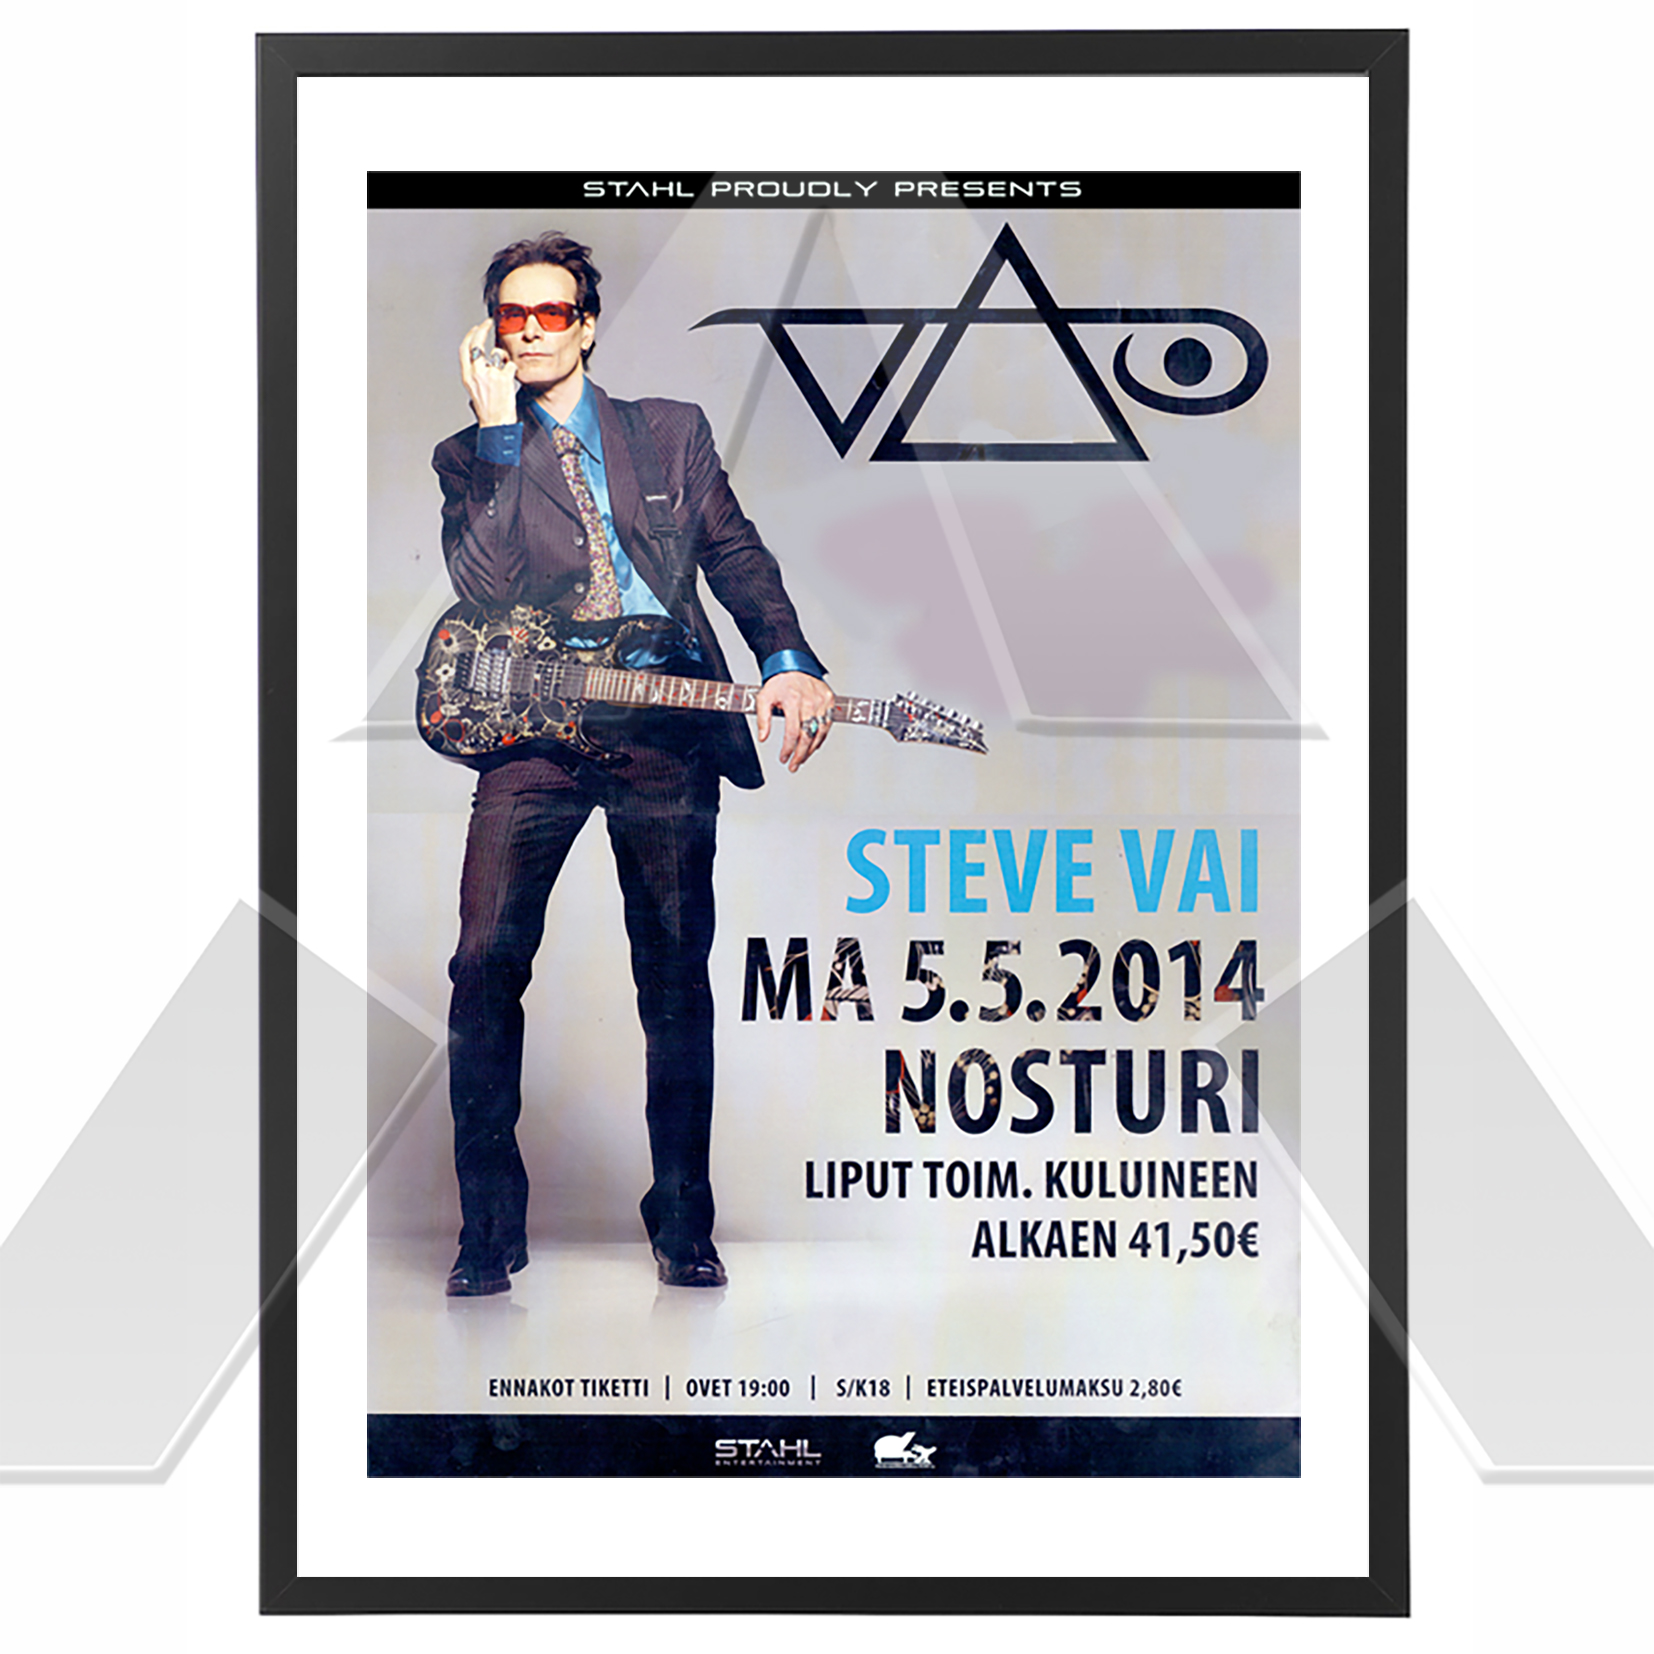 Steve Vai ★ Ray of Light Tour 2014 (tour poster / signed)